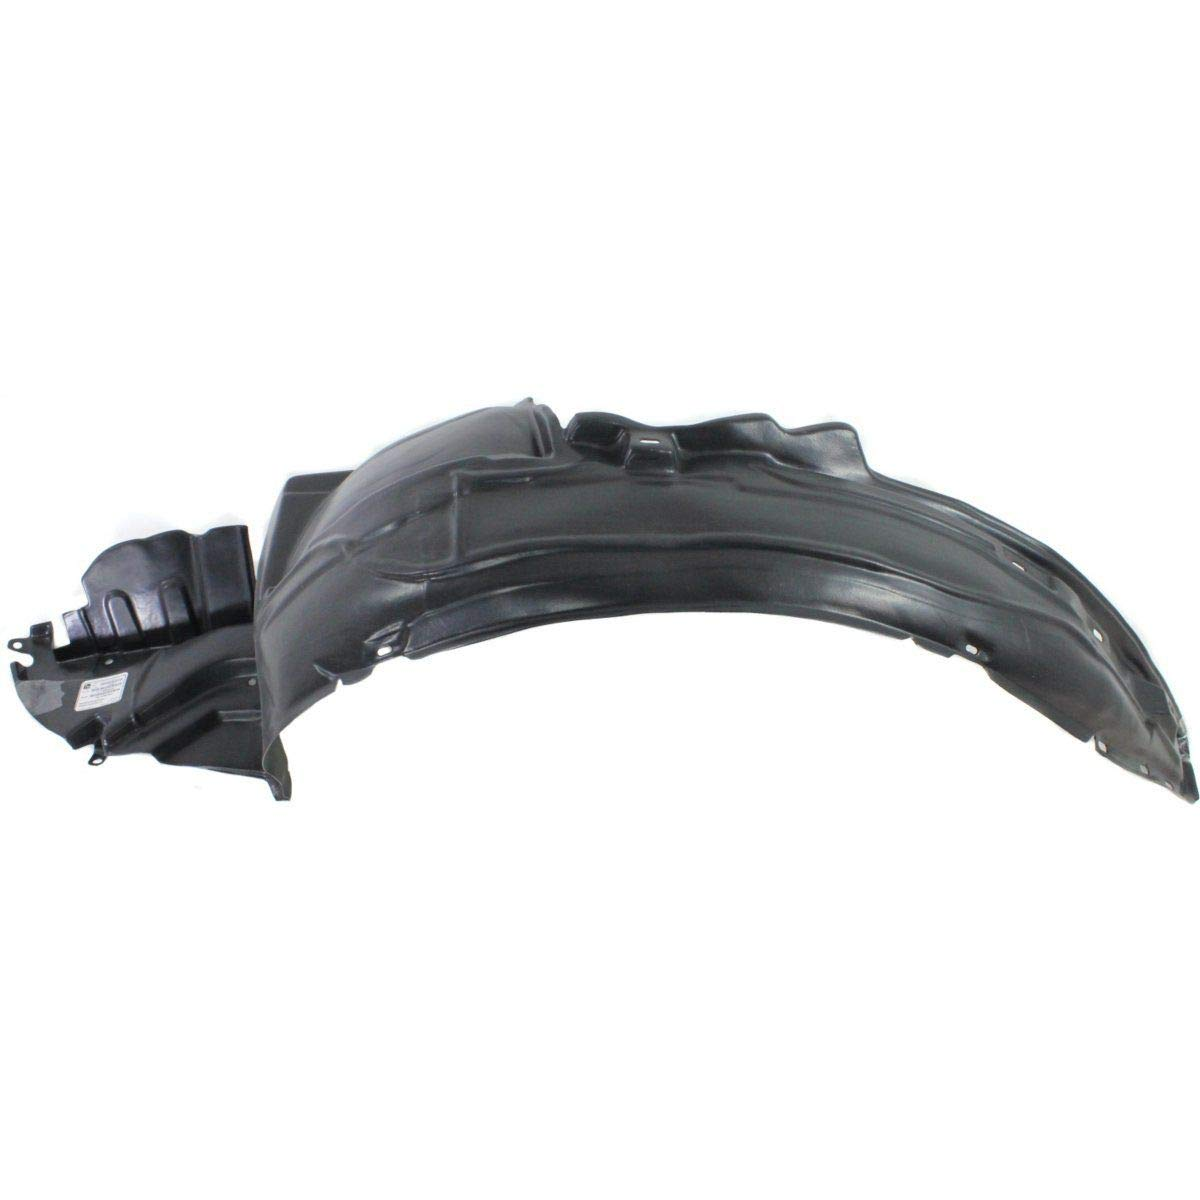 New Front Left and Right Side Fender Liner Set Of 2 For 2004-2005 Subaru Impreza And Outback 4-Door Wagon SU1250101 SU1251101